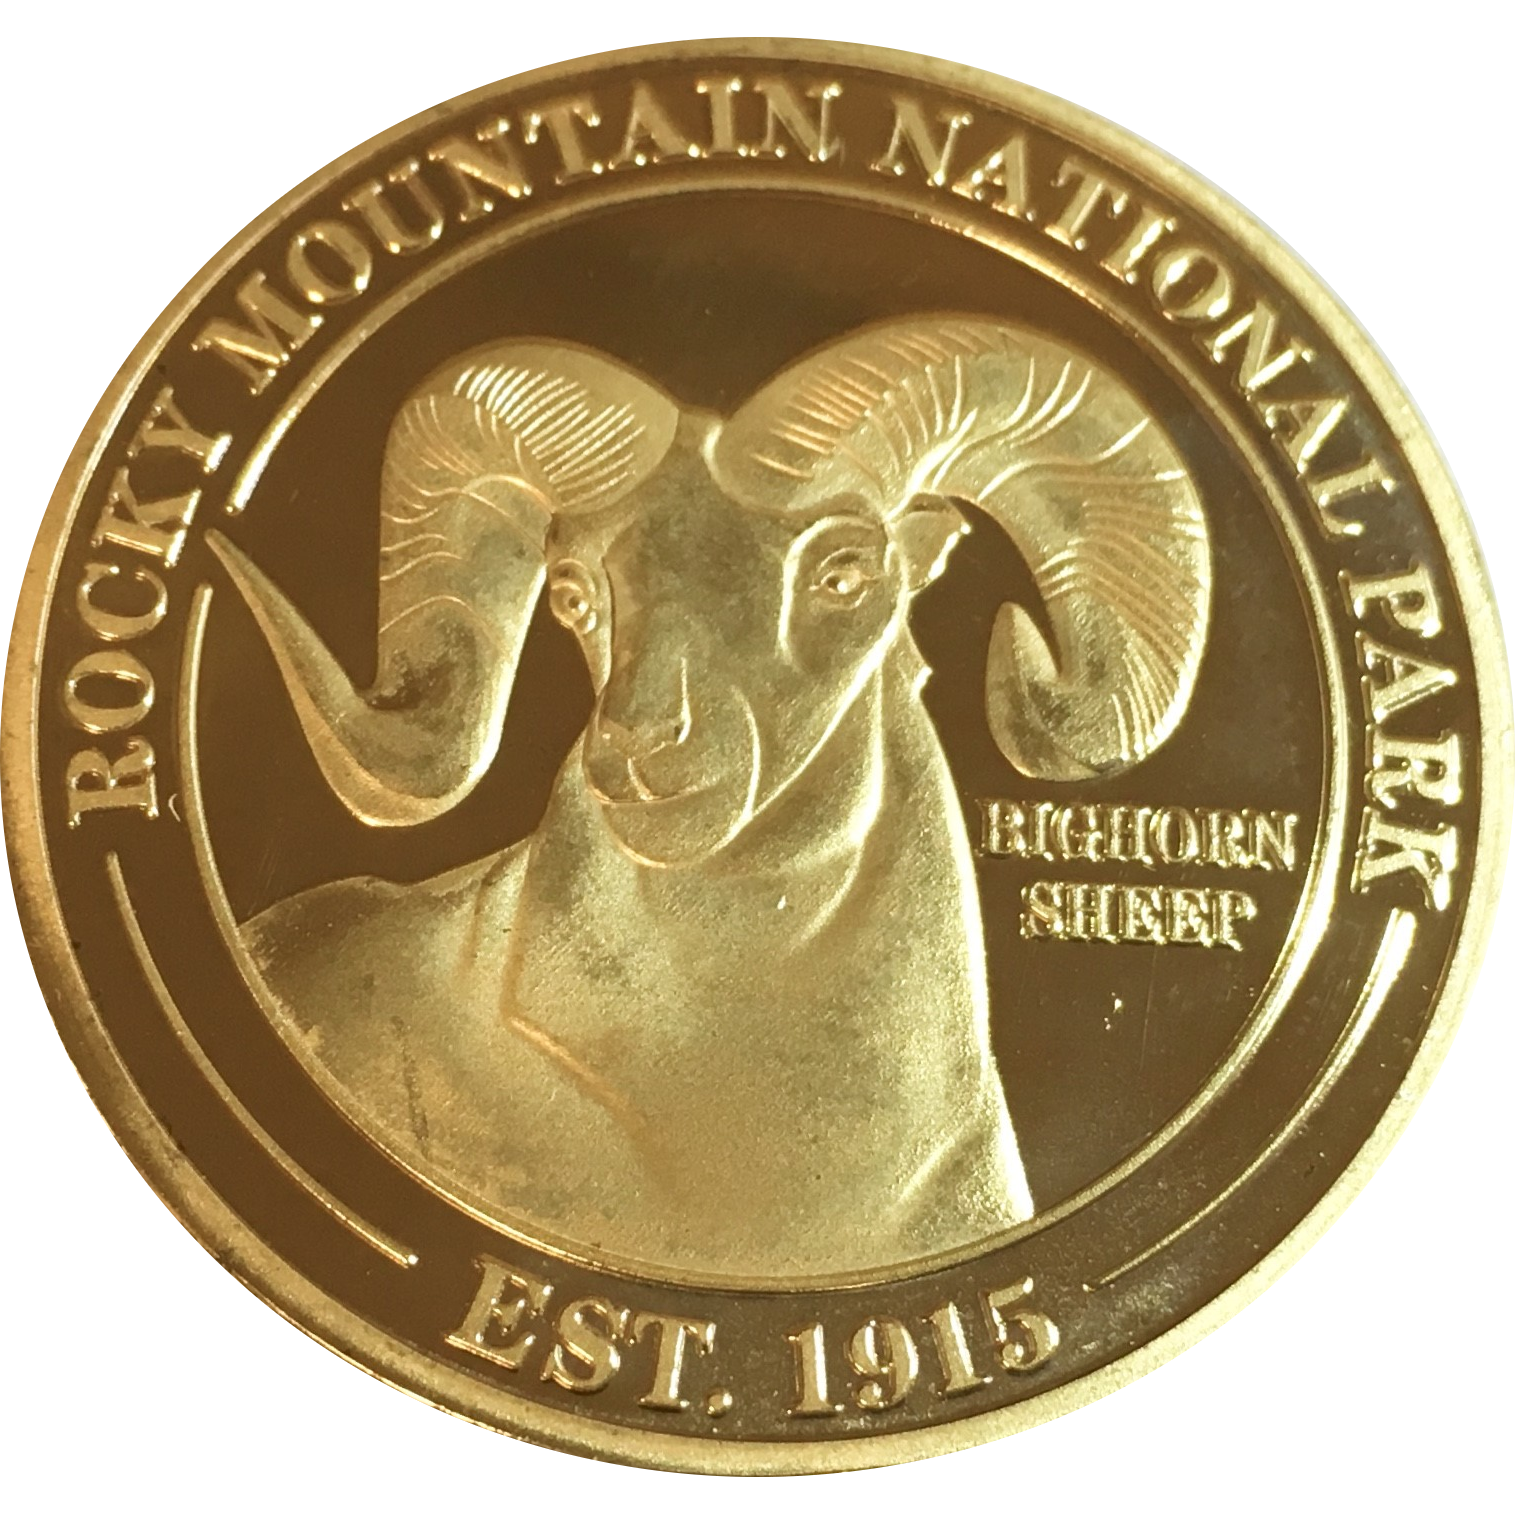 Gold coin front